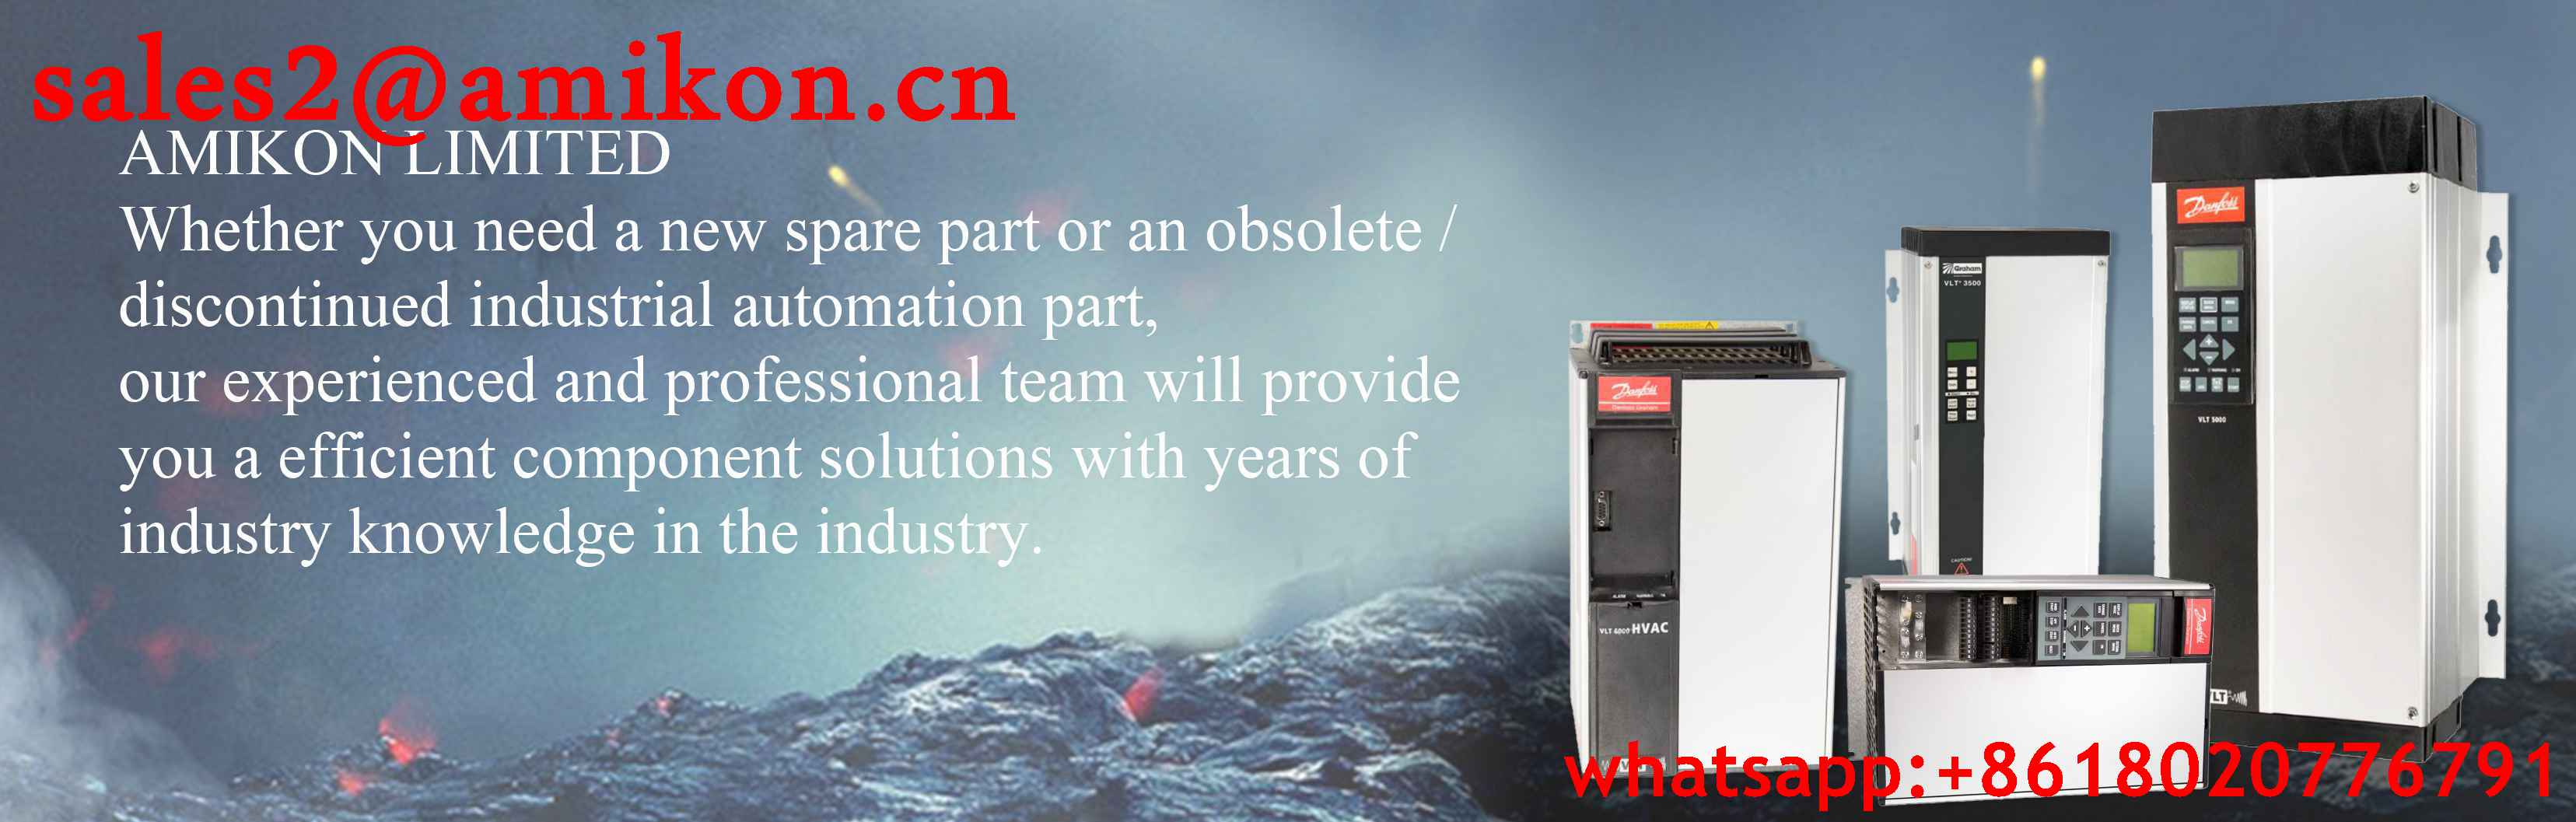 IC697BEM711 GE General Electric sales2@amikon.cn PLC DCS Industry Control System Module